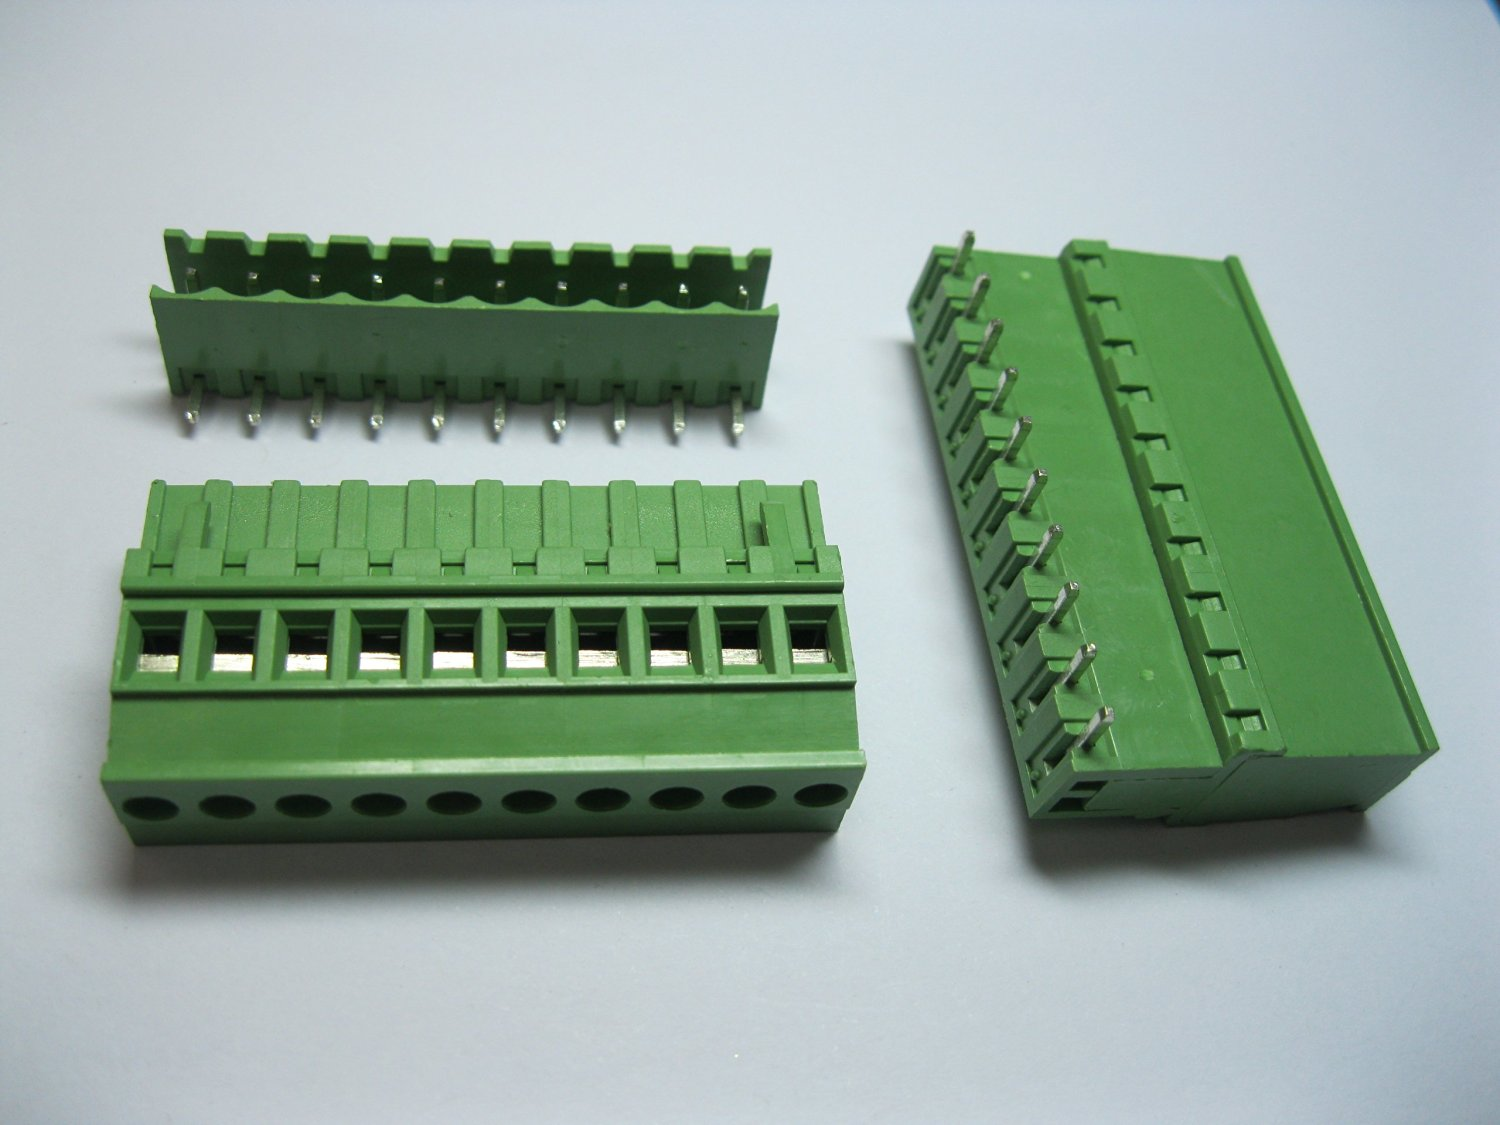 5 Pcs 5.08A 5.08mm Angle 10 Pin Screw Terminal Block Connector Pluggable Type Green Color Skywalking